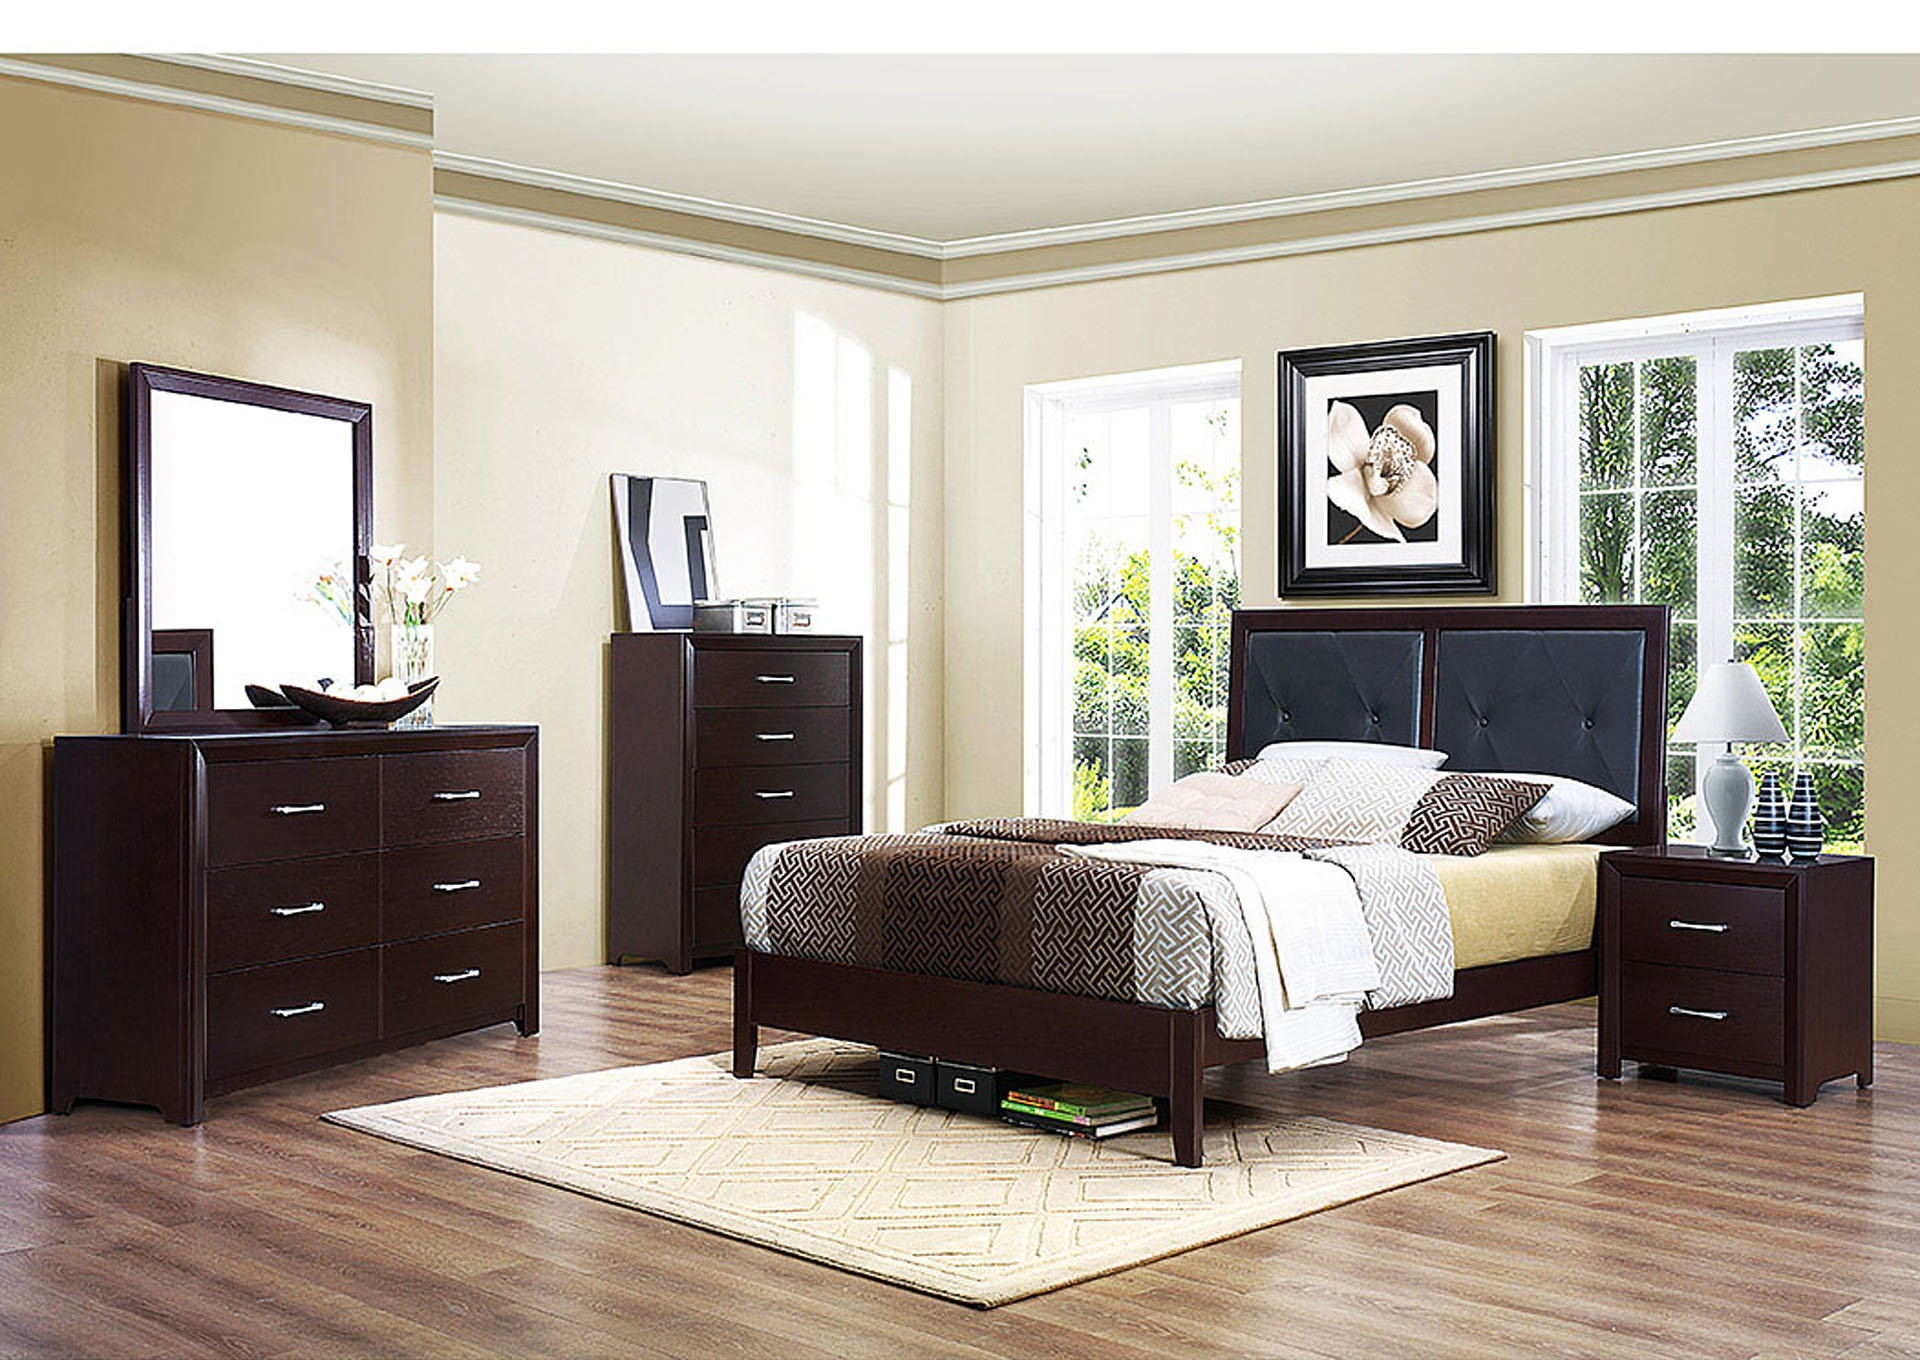 Edina Brown Espresso Upholstered Queen Platform Bed,Homelegance